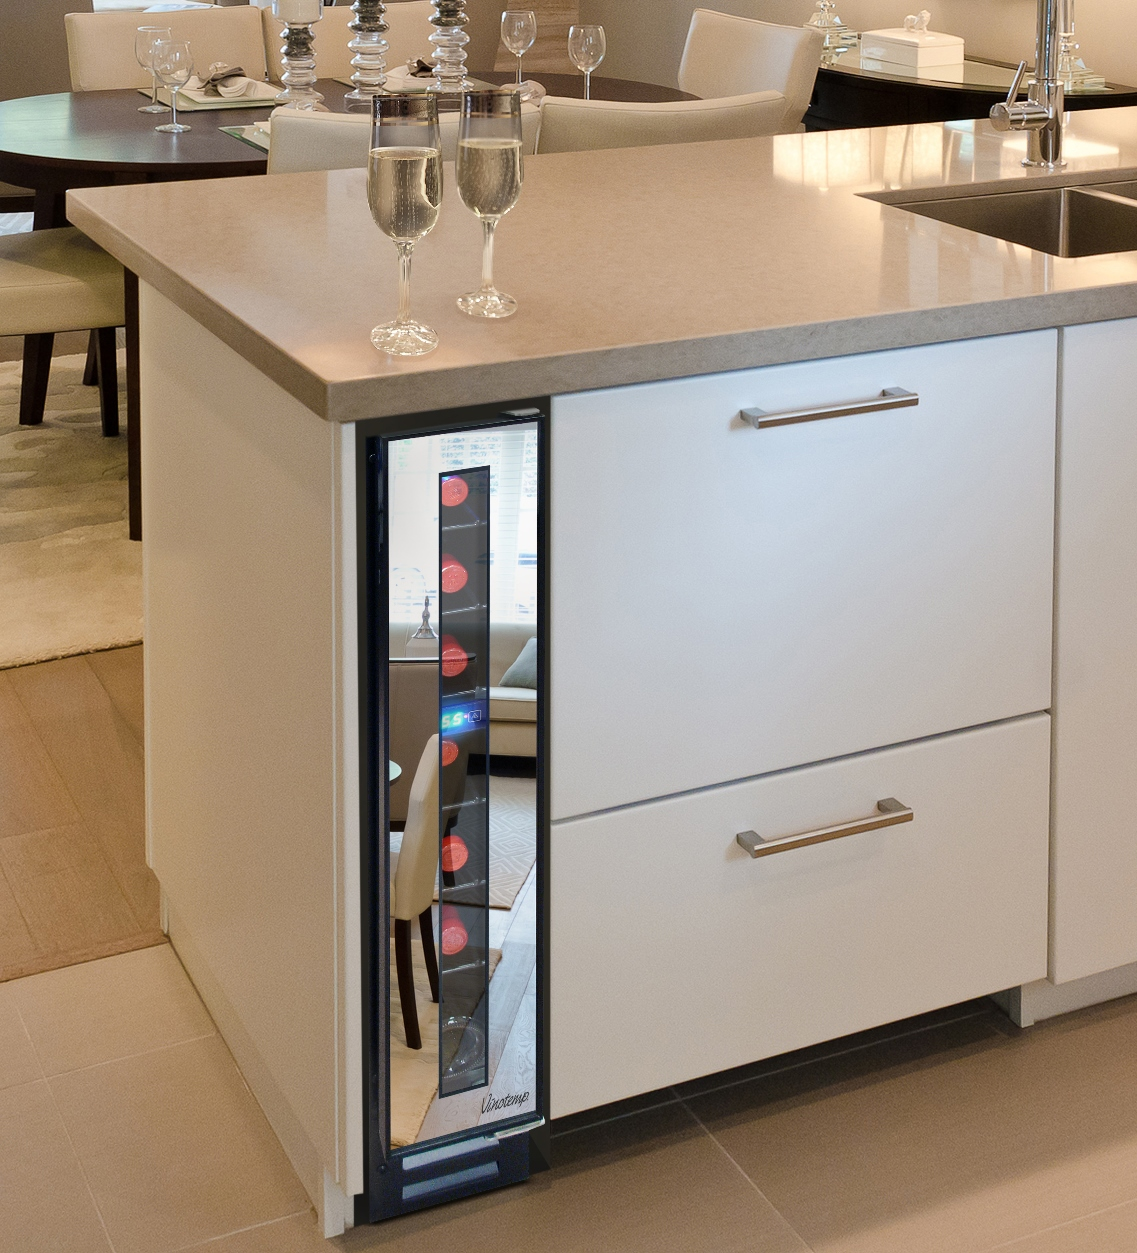 meredith corporation's beautiful kitchens & baths to recognize